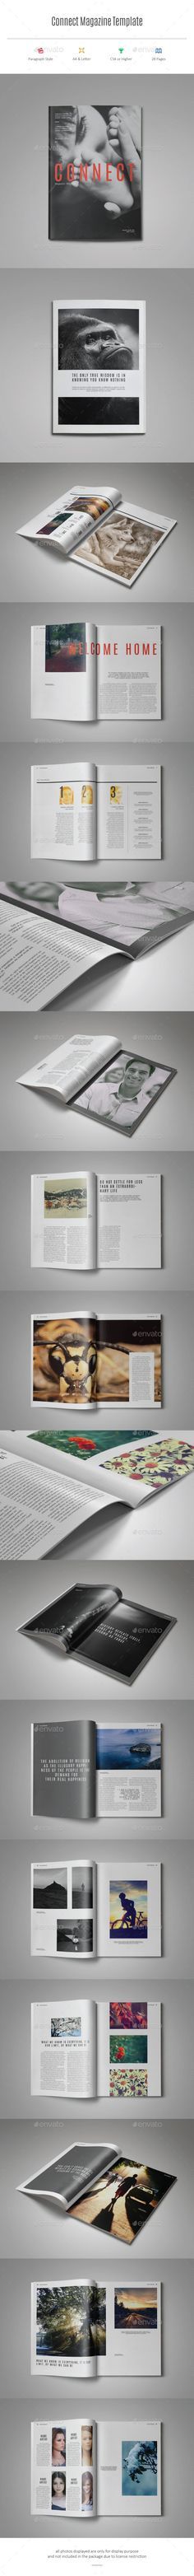 Connect Magazine Template #design #journal Download: http://graphicriver.net/item/connect-magazine-template/11466844?ref=ksioks